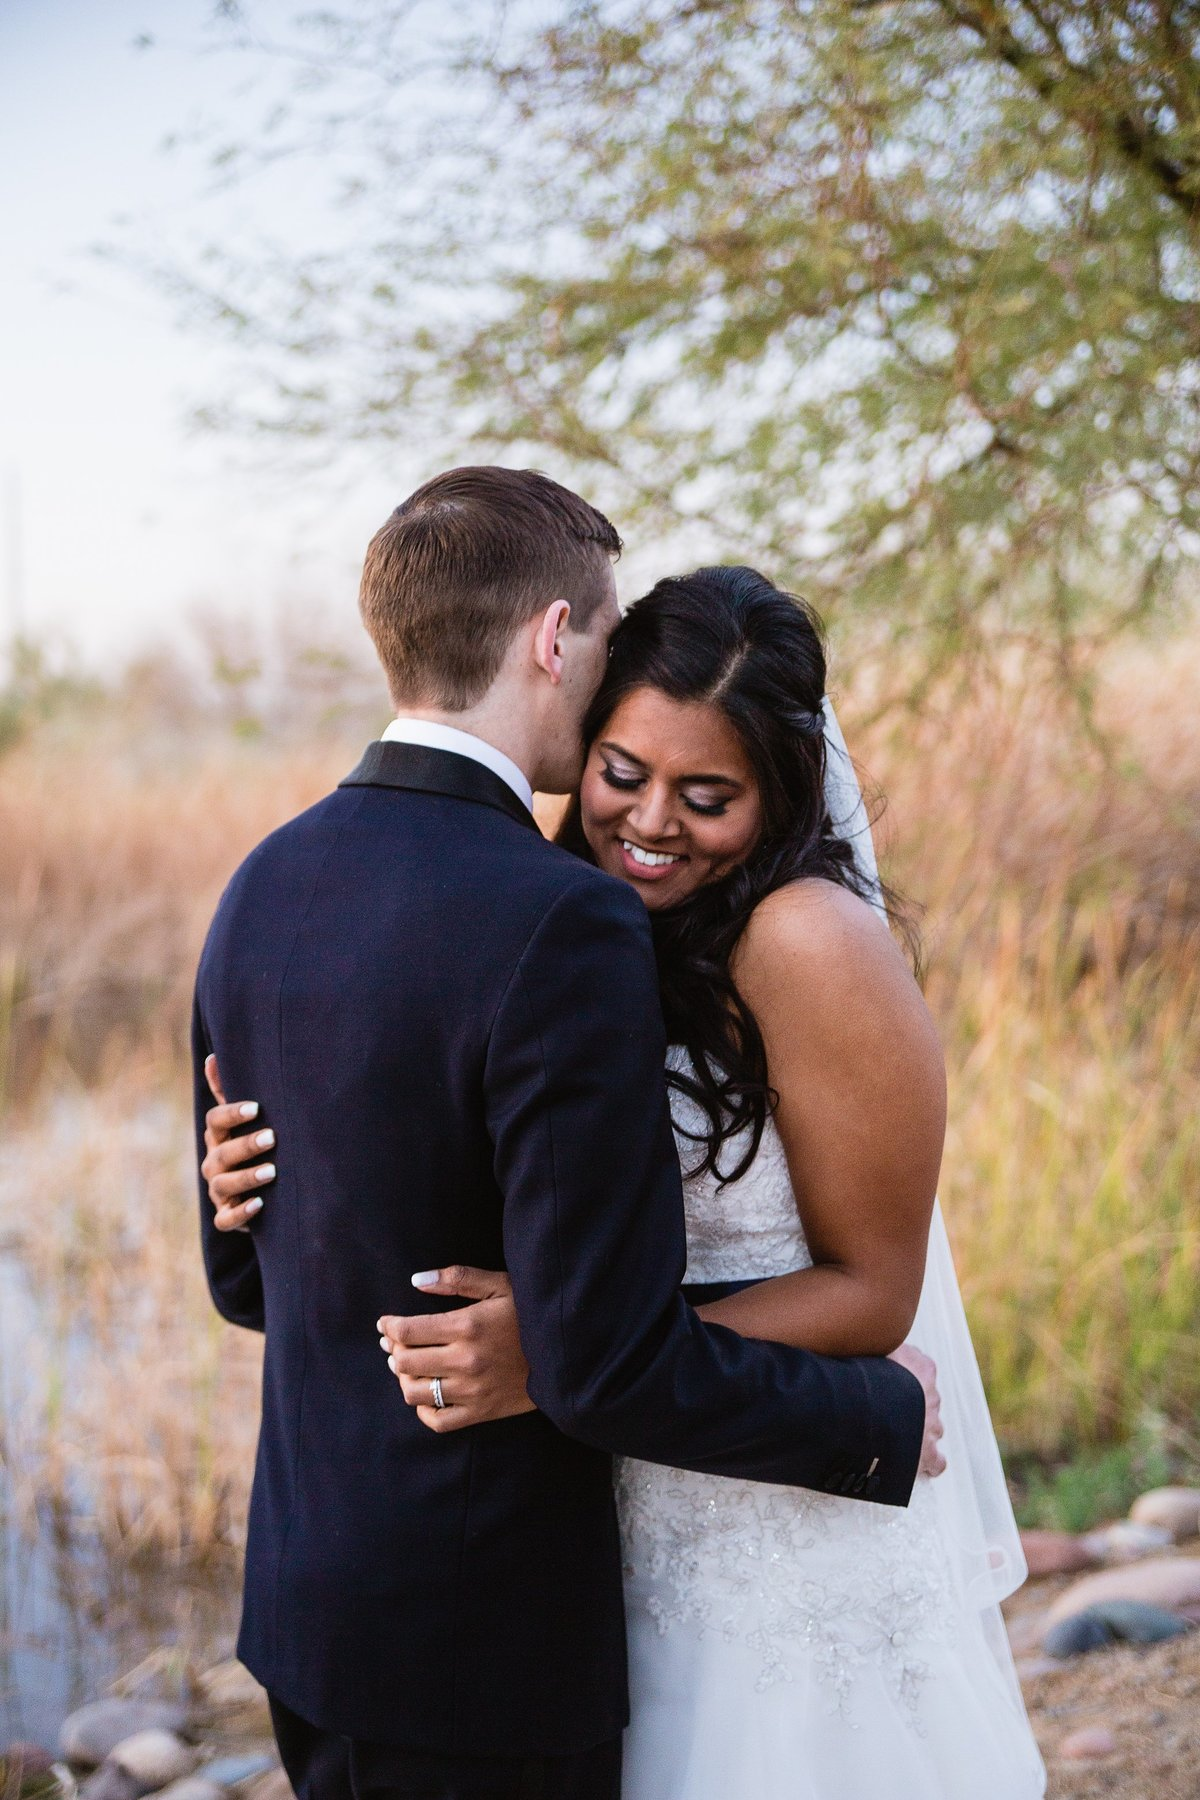 Happy bride sharing an intimate moment with her groom by Phoenix wedding photographer PMA Photography.